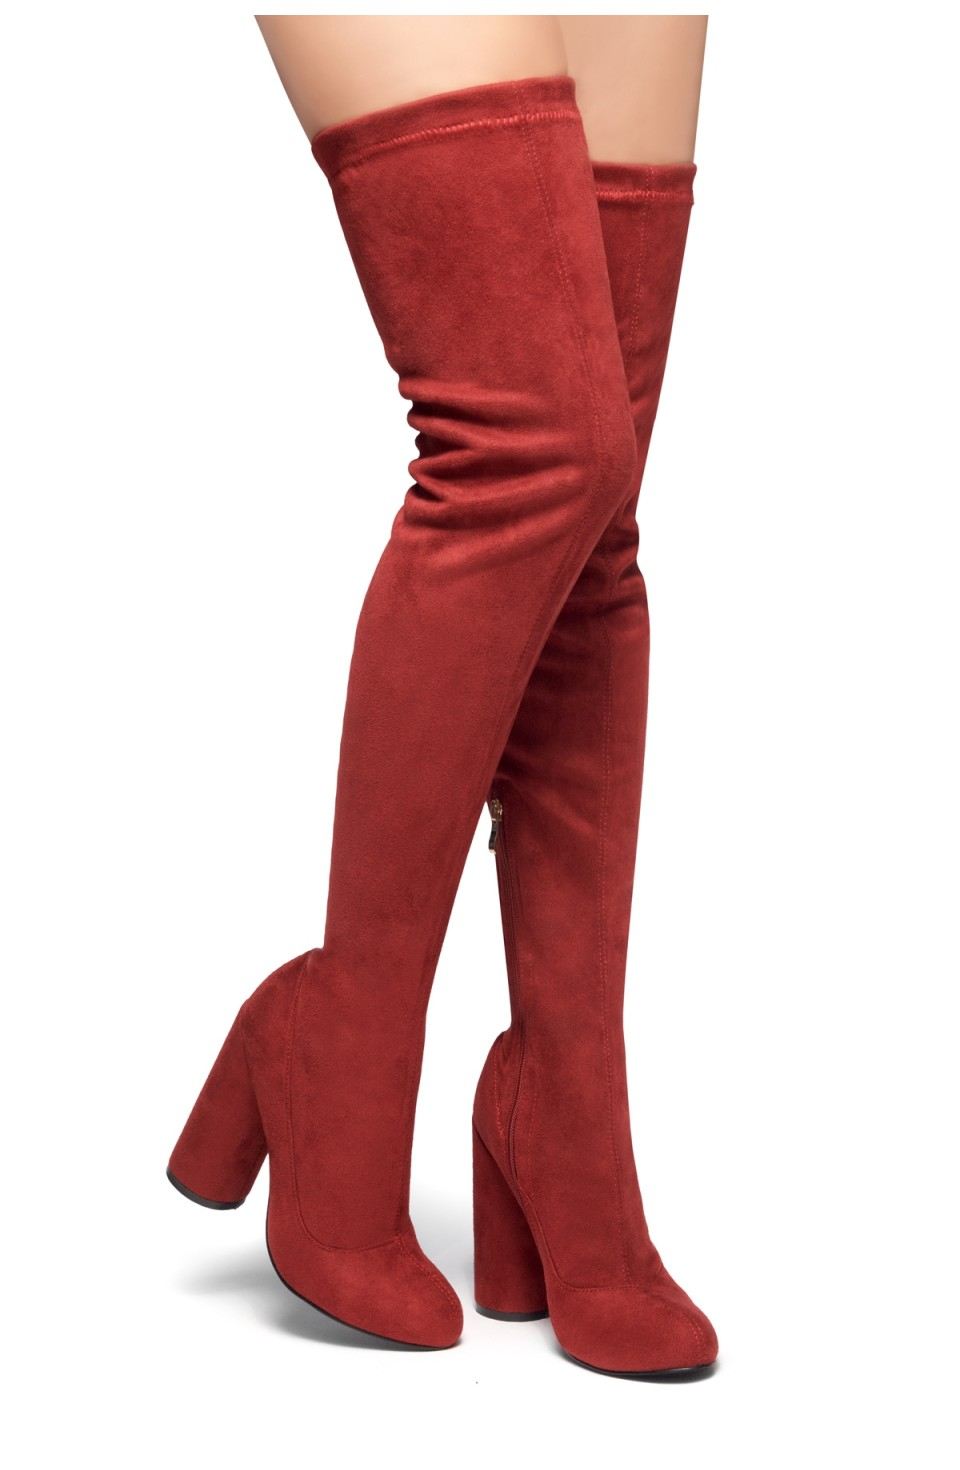 HerStyle Need you touch-Thigh High Block heel sock boot, Almond toe (Burgundy)